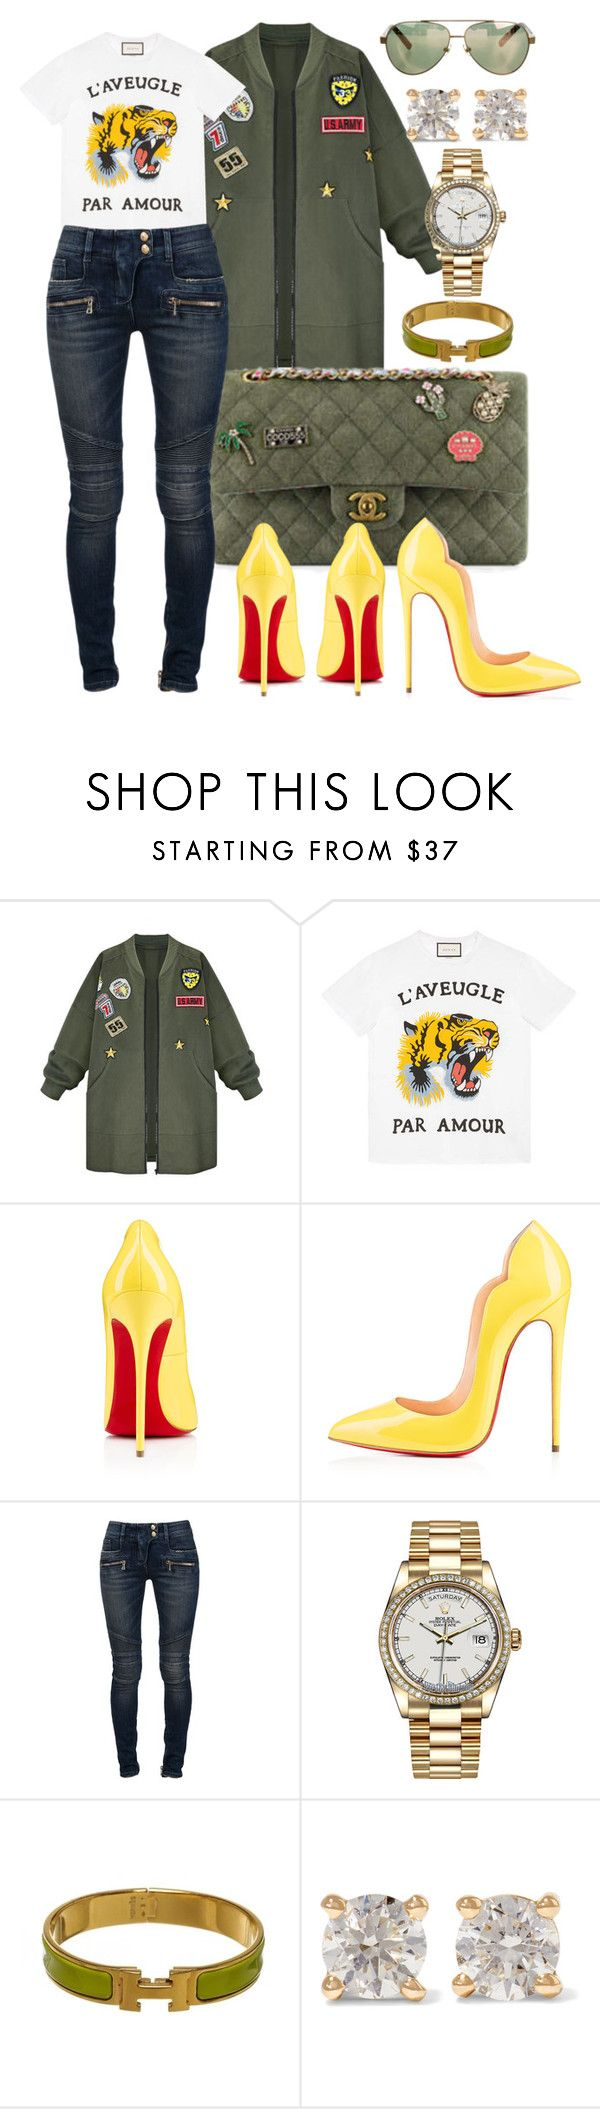 """""""Untitled #458"""" by scannedbyaaron ❤ liked on Polyvore featuring WithChic, Gucci, Chanel, Christian Louboutin, Balmain, Rolex, Hermès, Anita Ko and David Yurman"""